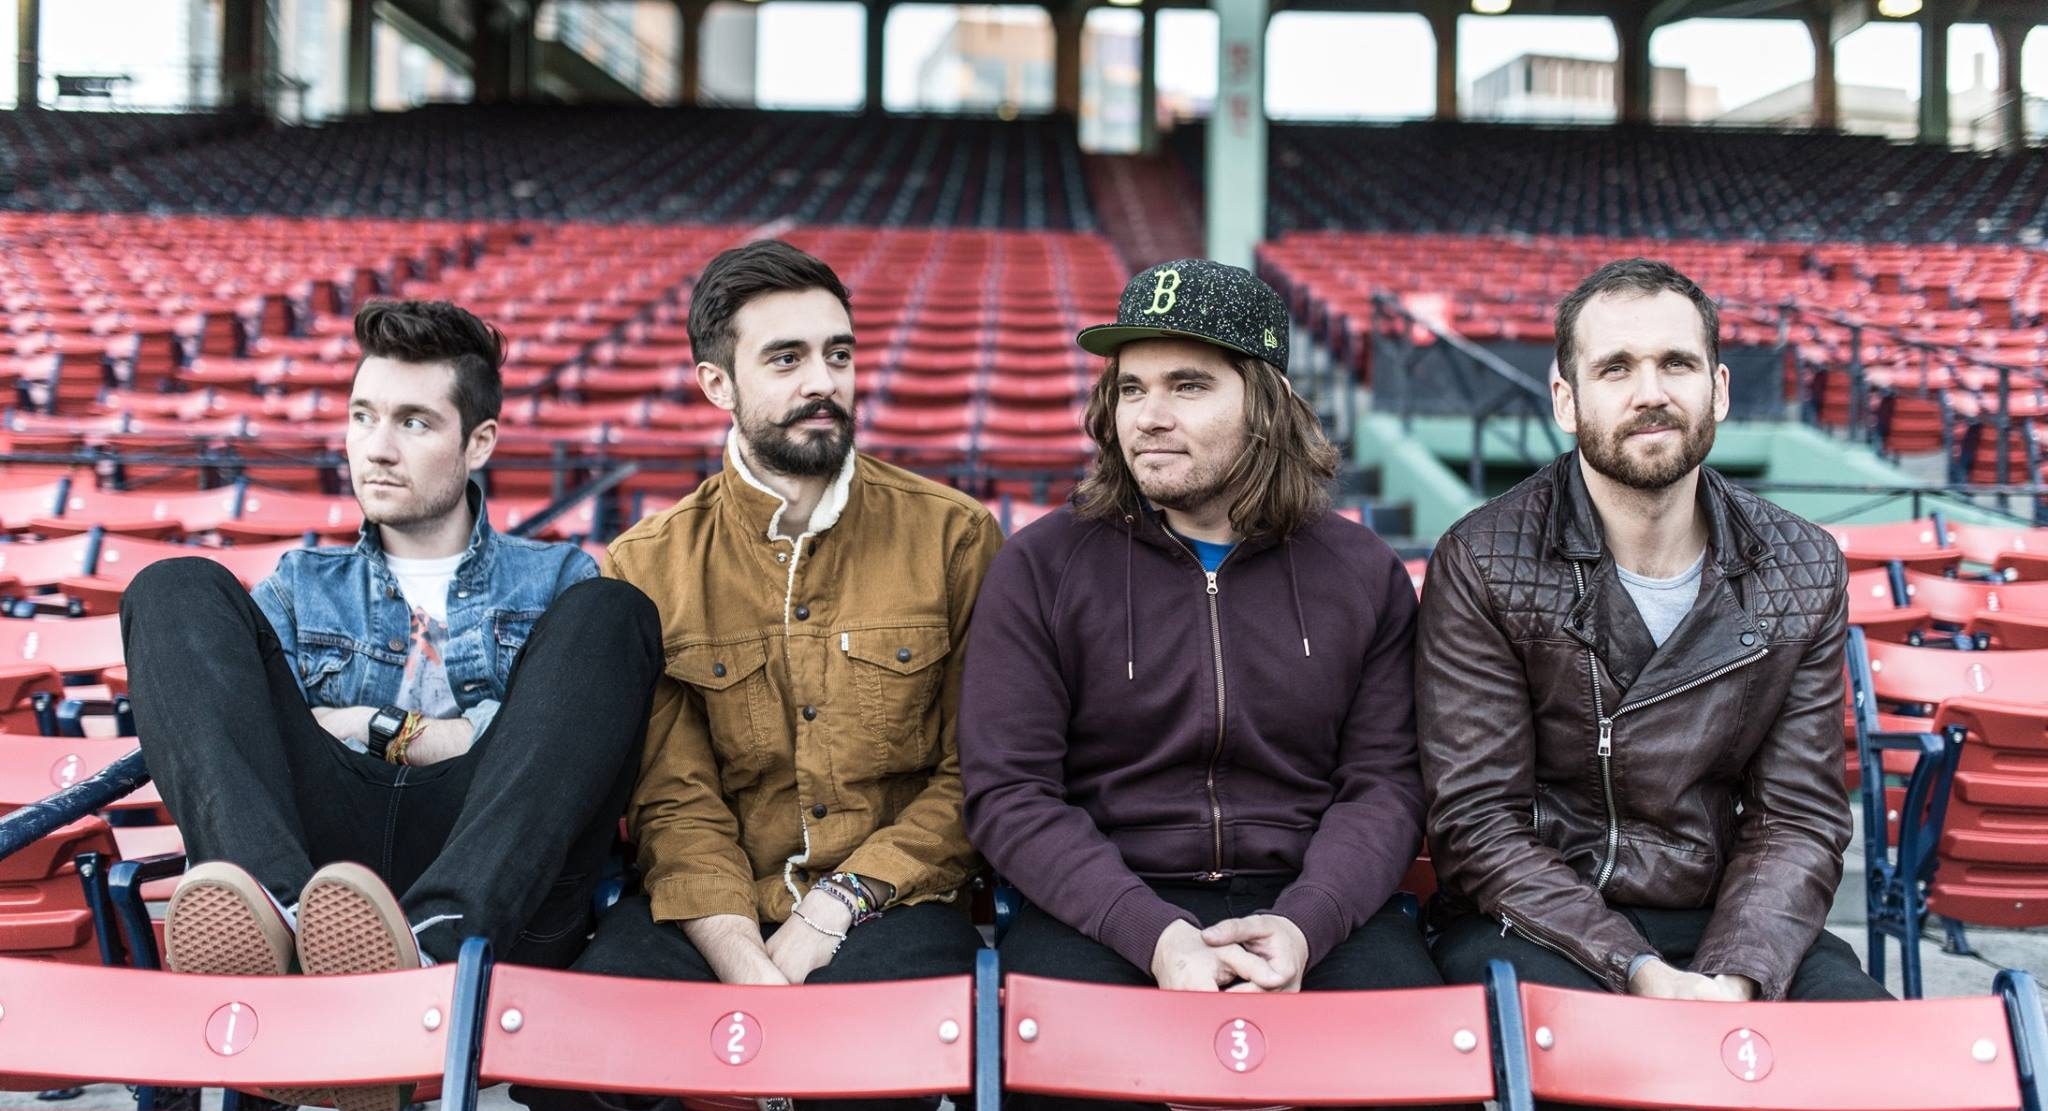 Bastille to kick off their next major tour at the ACC this spring